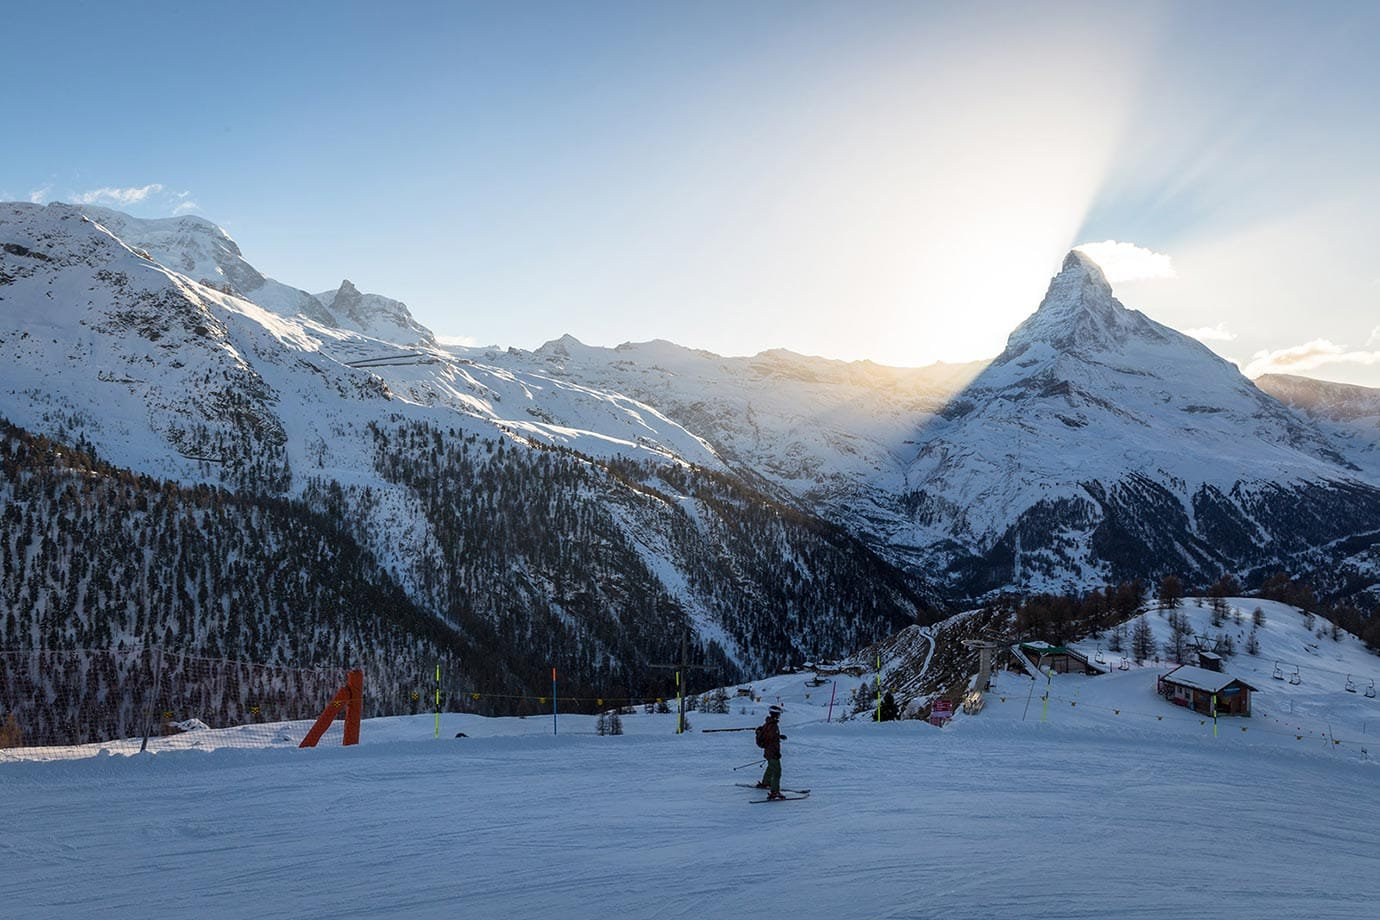 Skiing at sunset in Zermatt